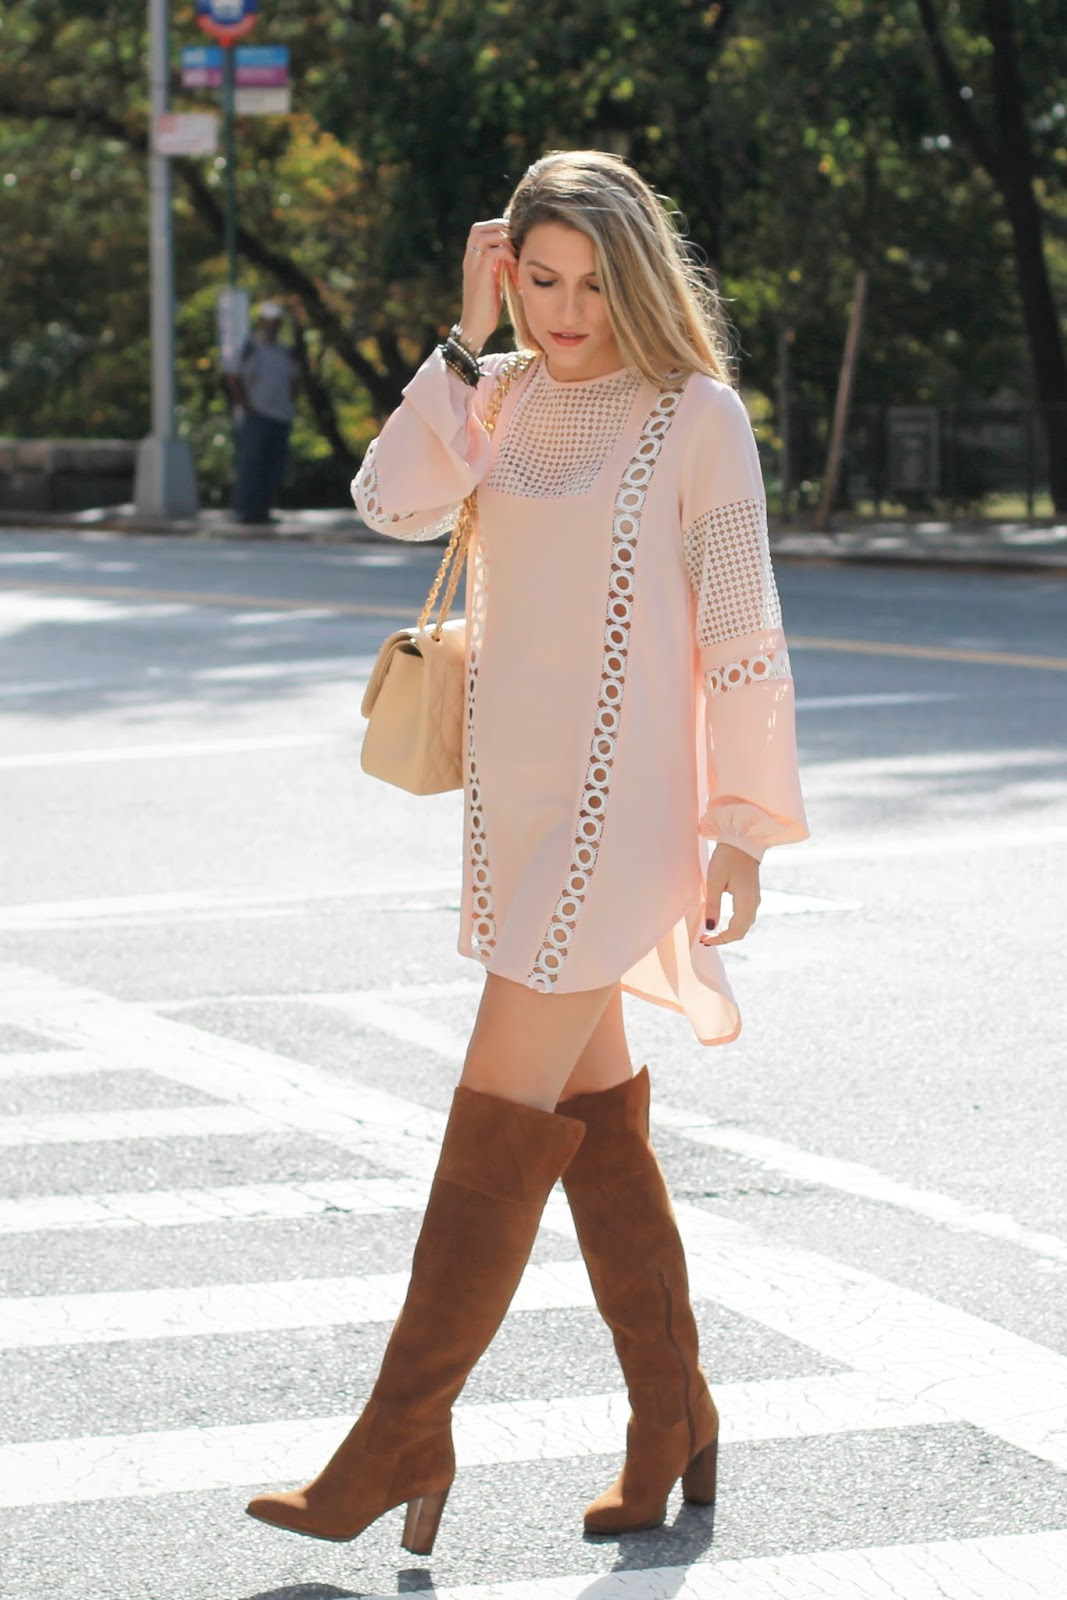 Brown Suede Knee High Boots | DRESSED FOR DREAMS